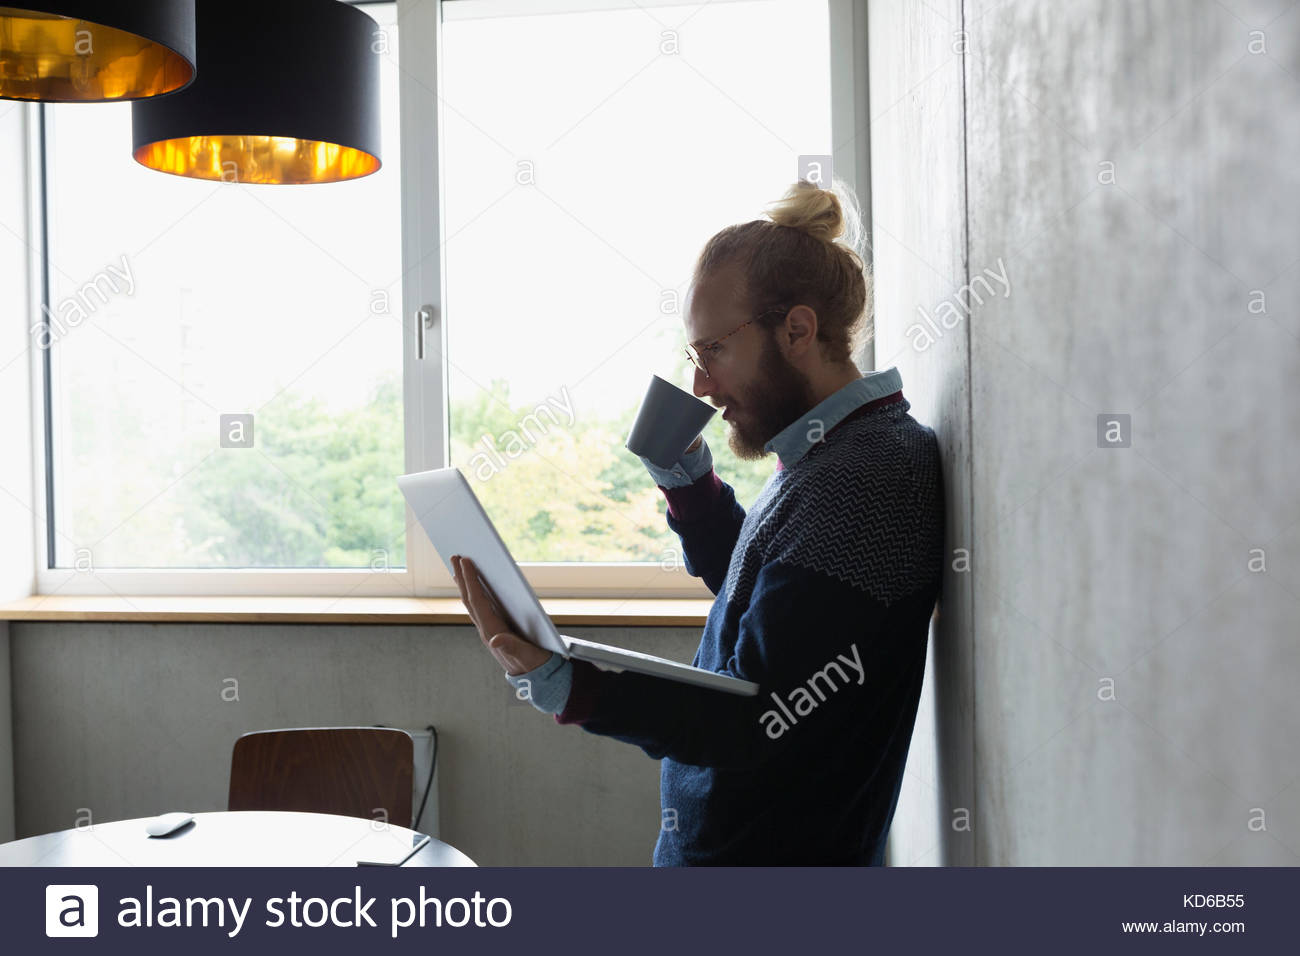 Businessman drinking coffee and using laptop in conference room Photo Stock